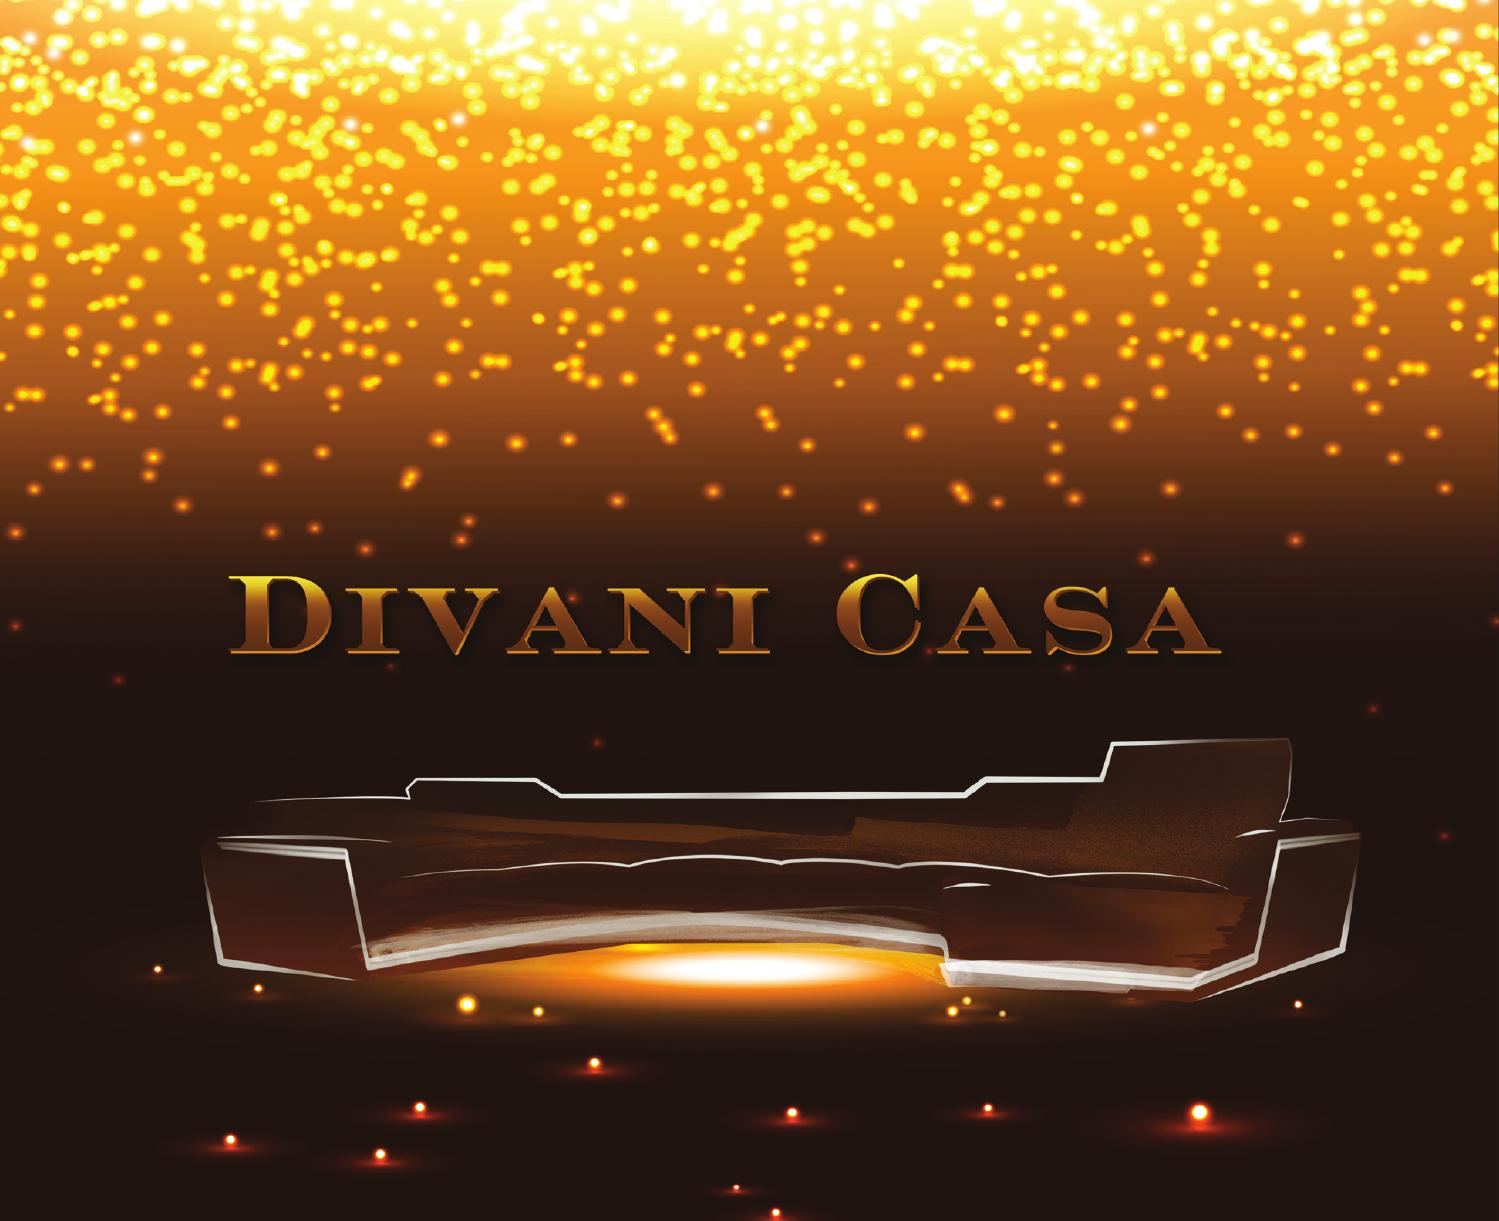 Divani Casa Encore Divani Casa 2015 Catalog By Vig Furniture Inc Issuu